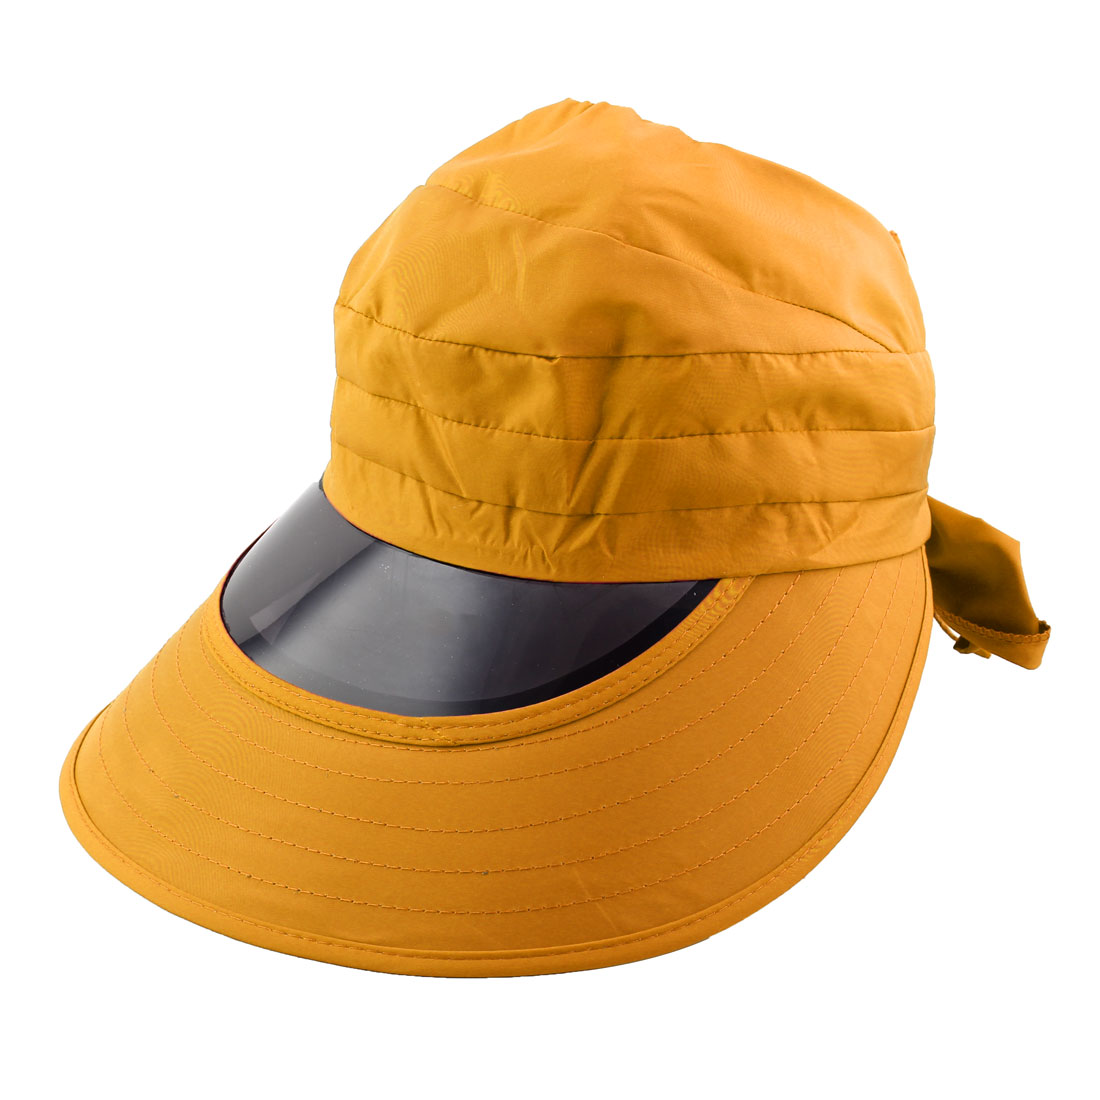 Woman Outdoor Travel Cycling Summer Beach Wide Brimmed Cap Sun Protective Visor Hat Yellow